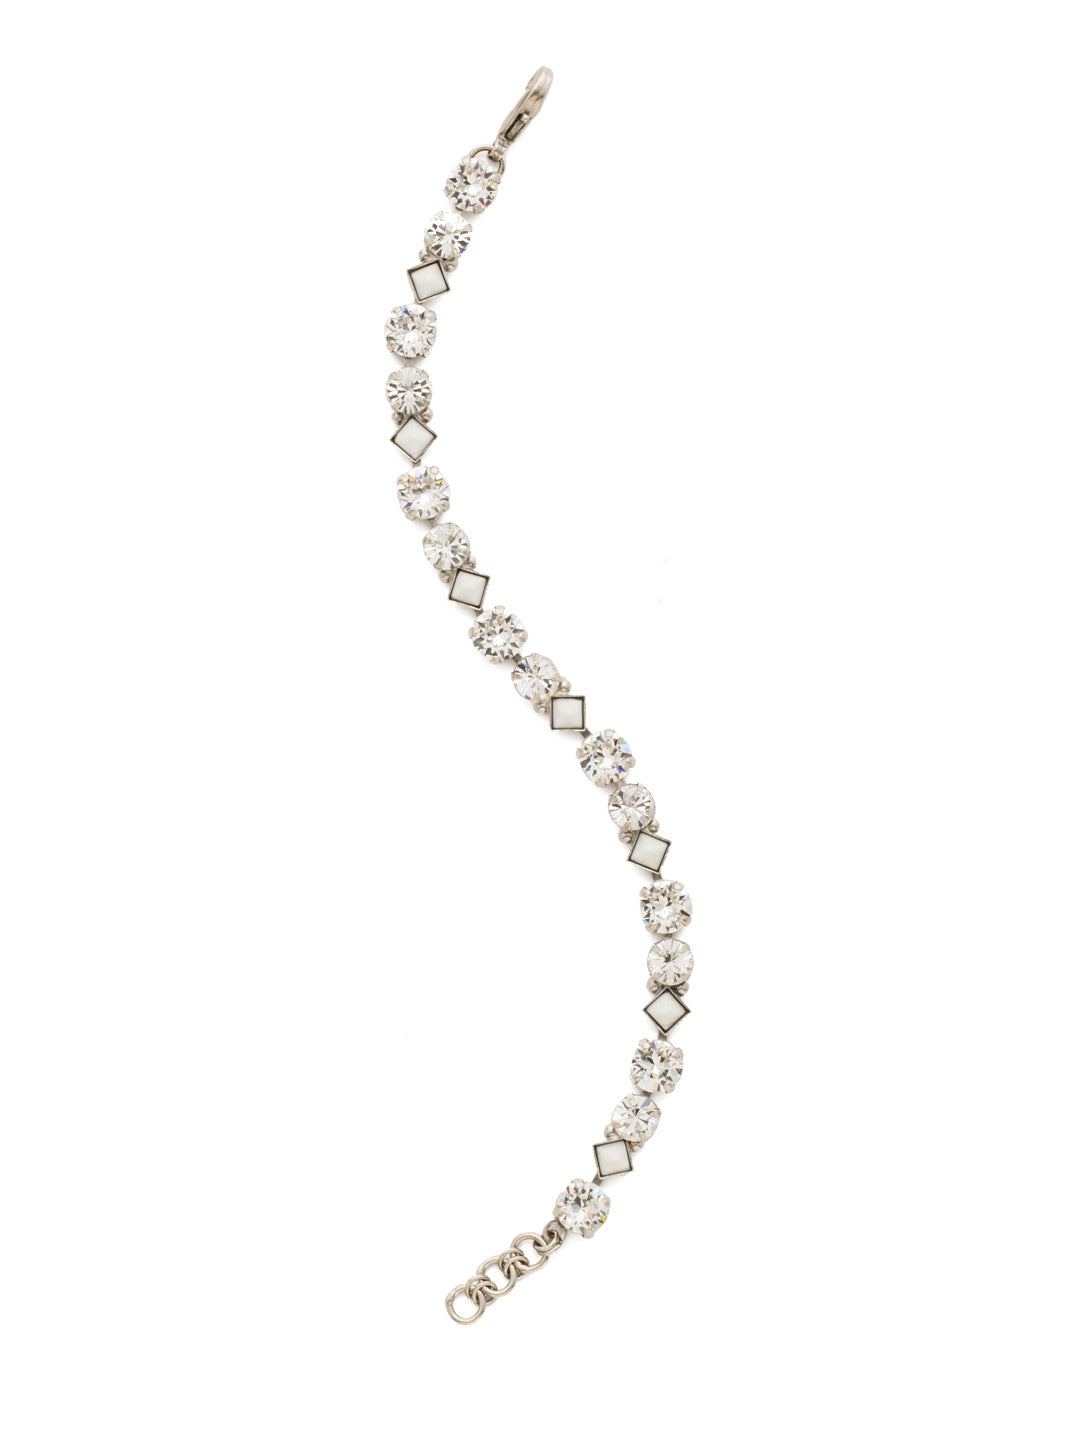 Darling Diamond Tennis Bracelet - BDN36ASCRY